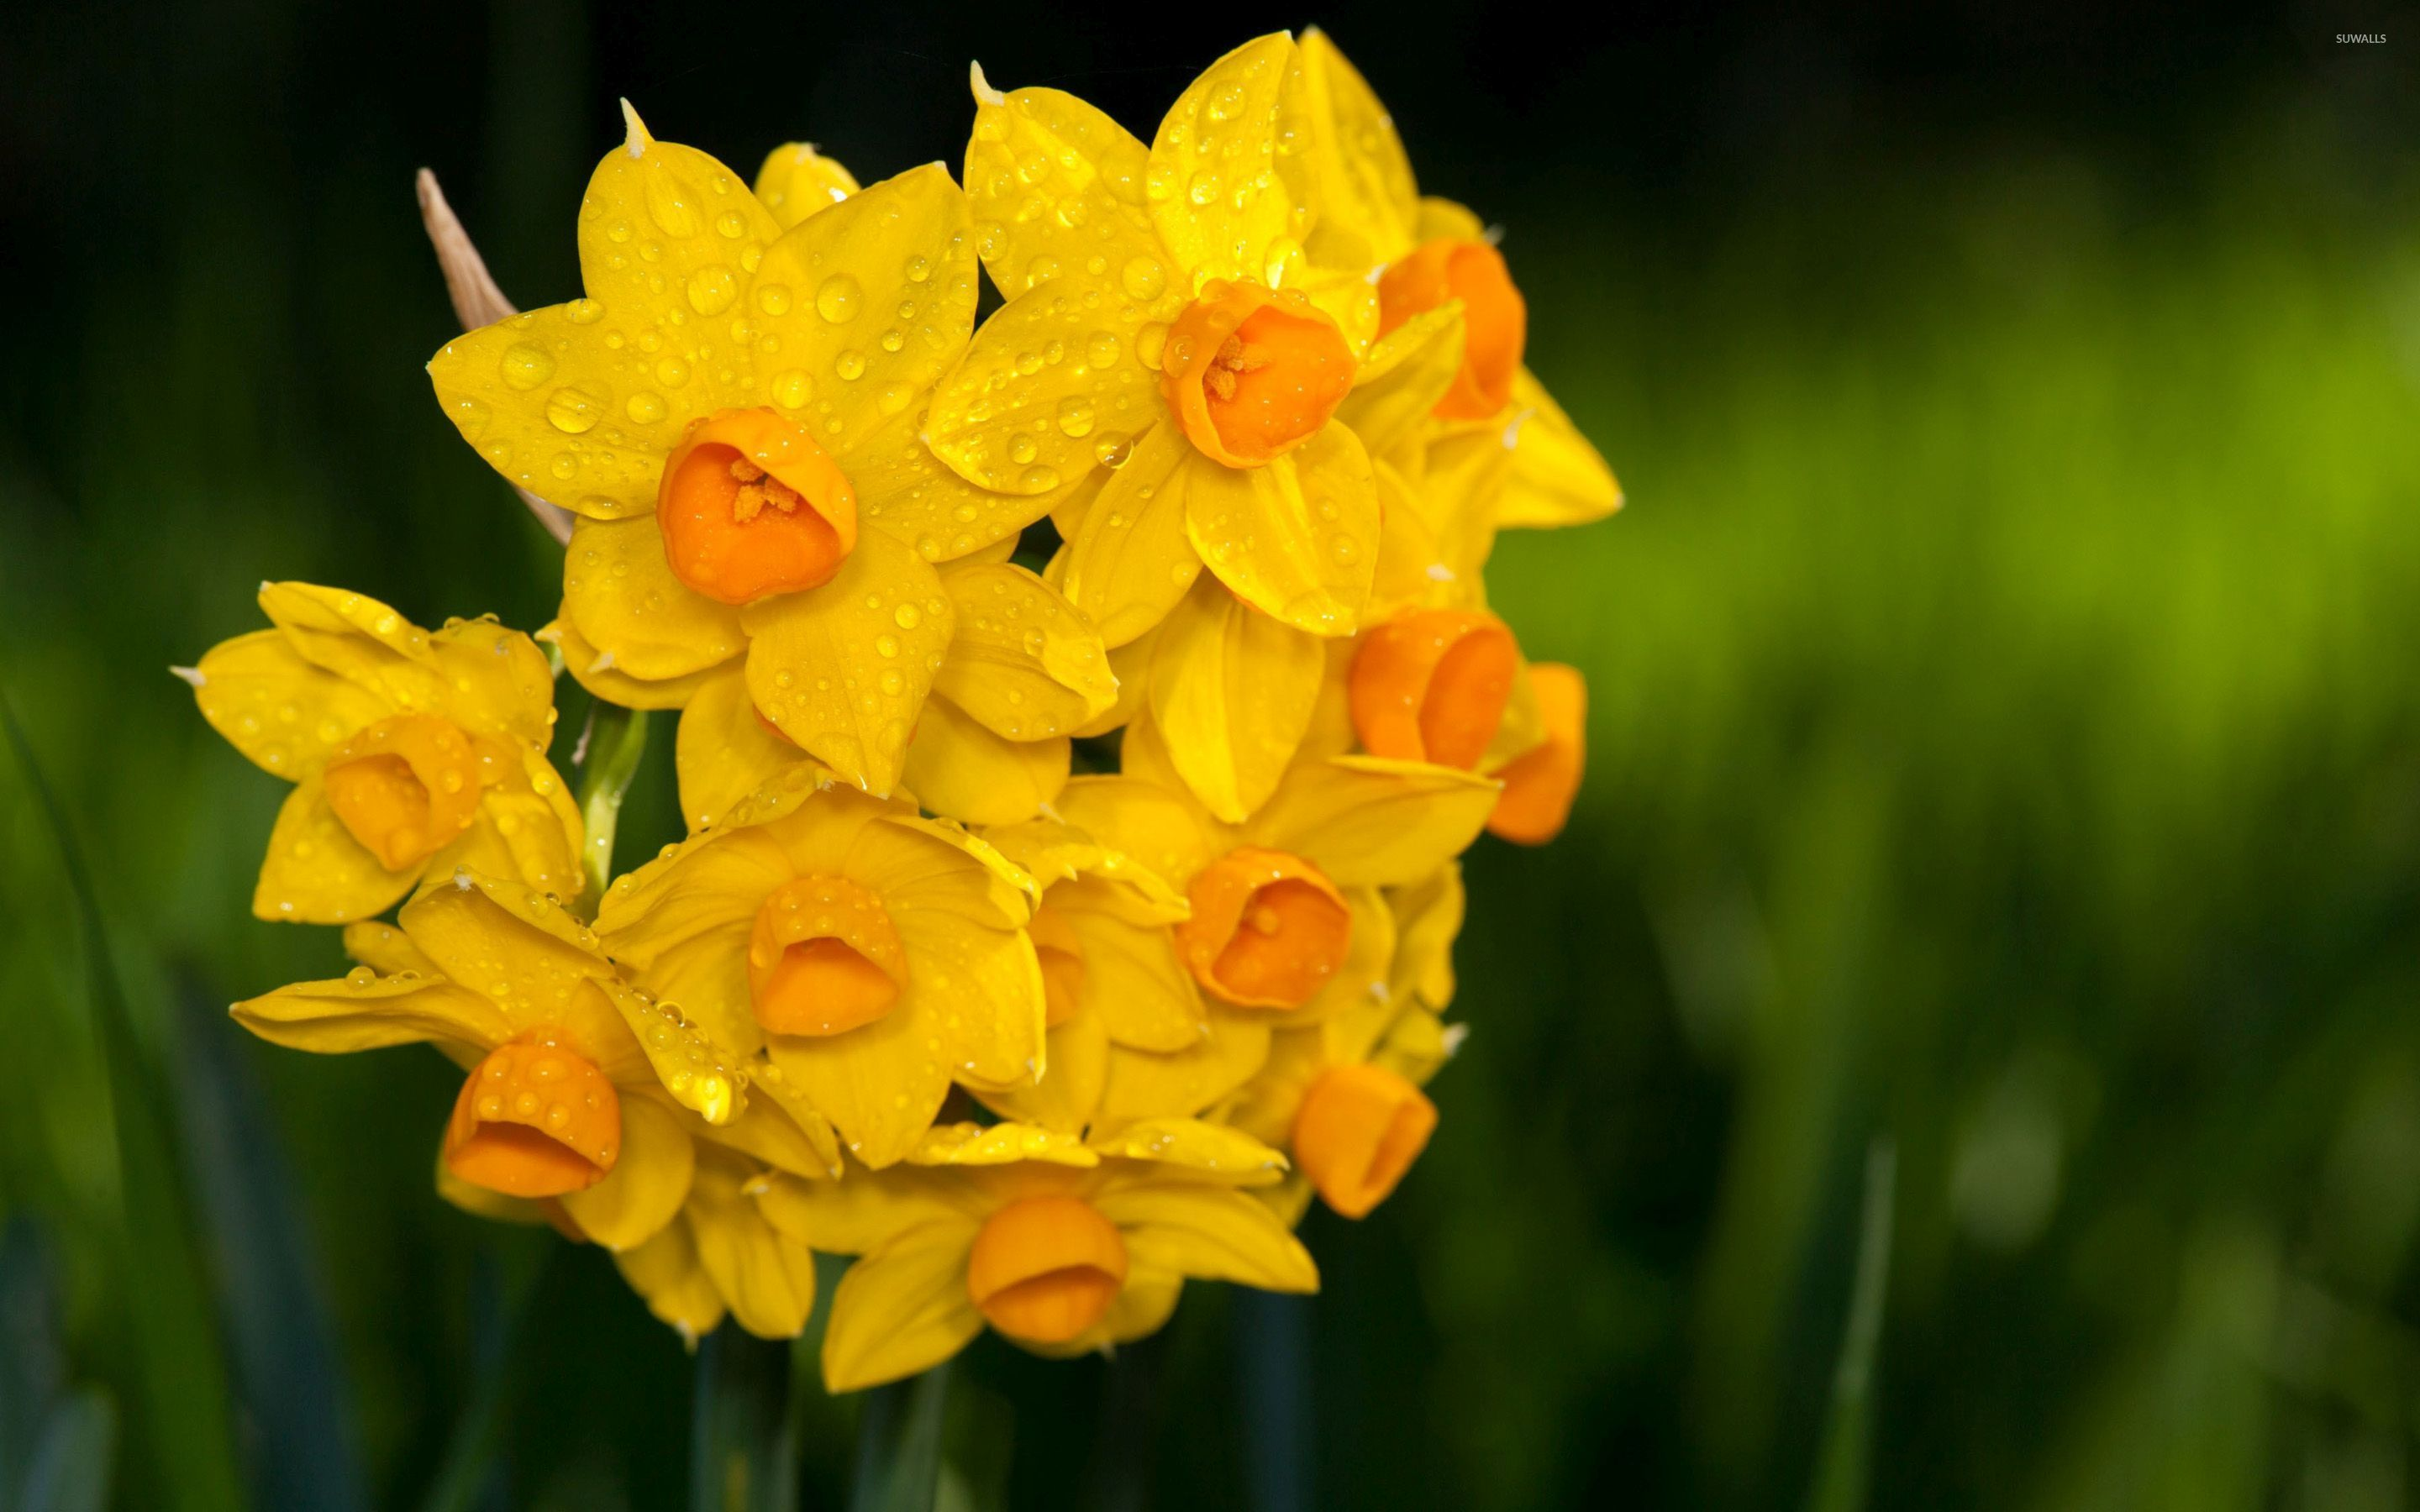 water drops on daffodils wallpaper - flower wallpapers - #48008